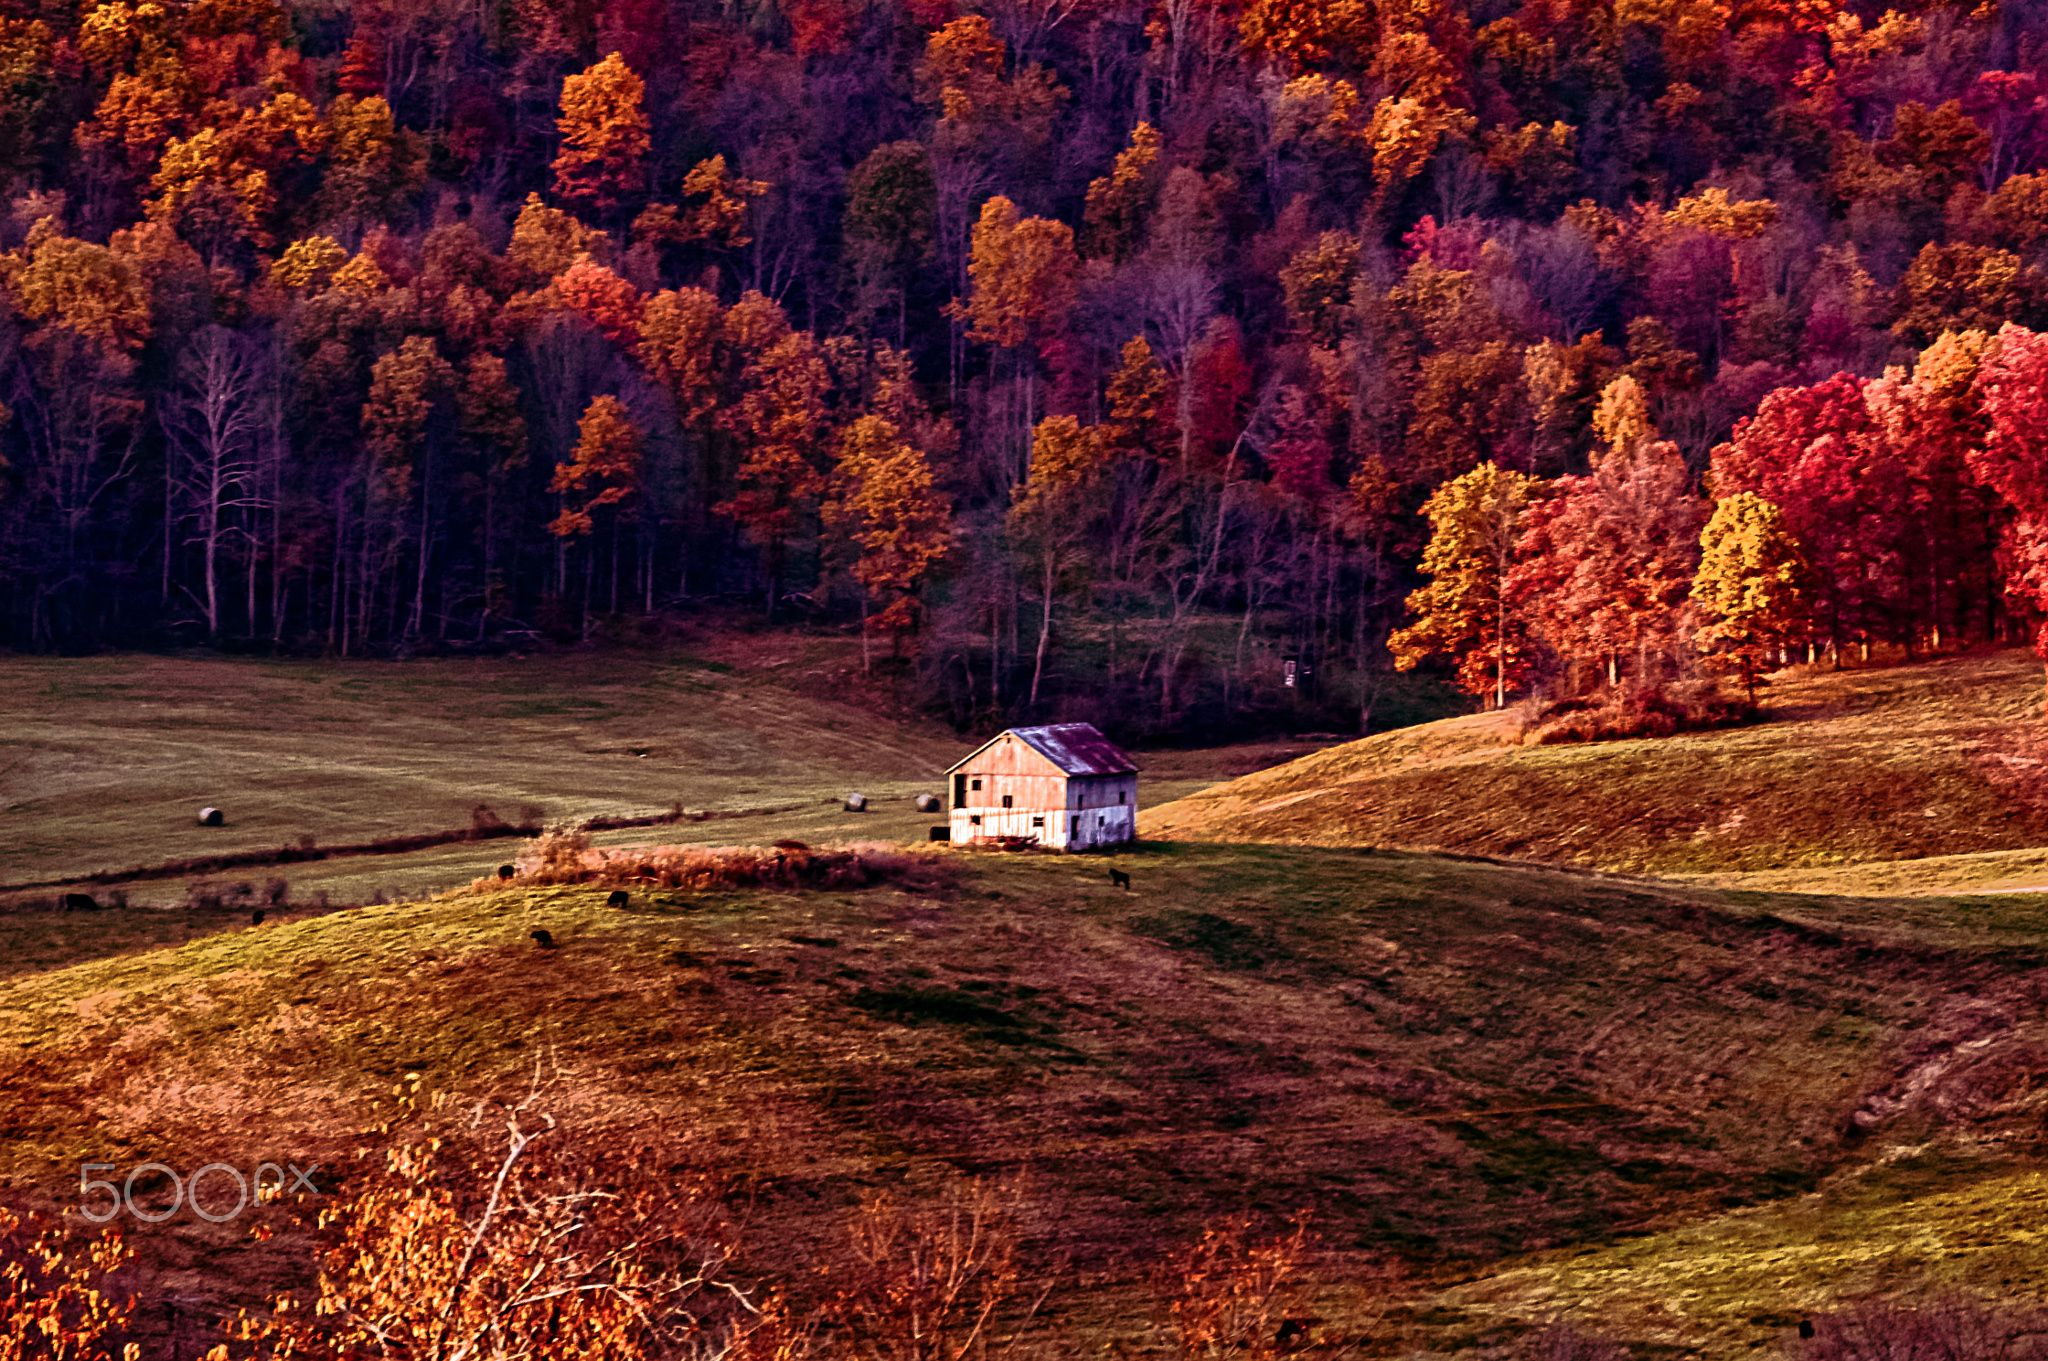 Barn isolated on a hill surrounded by cattle and trees set off with beautiful fall colors. Located in rural Ohio.